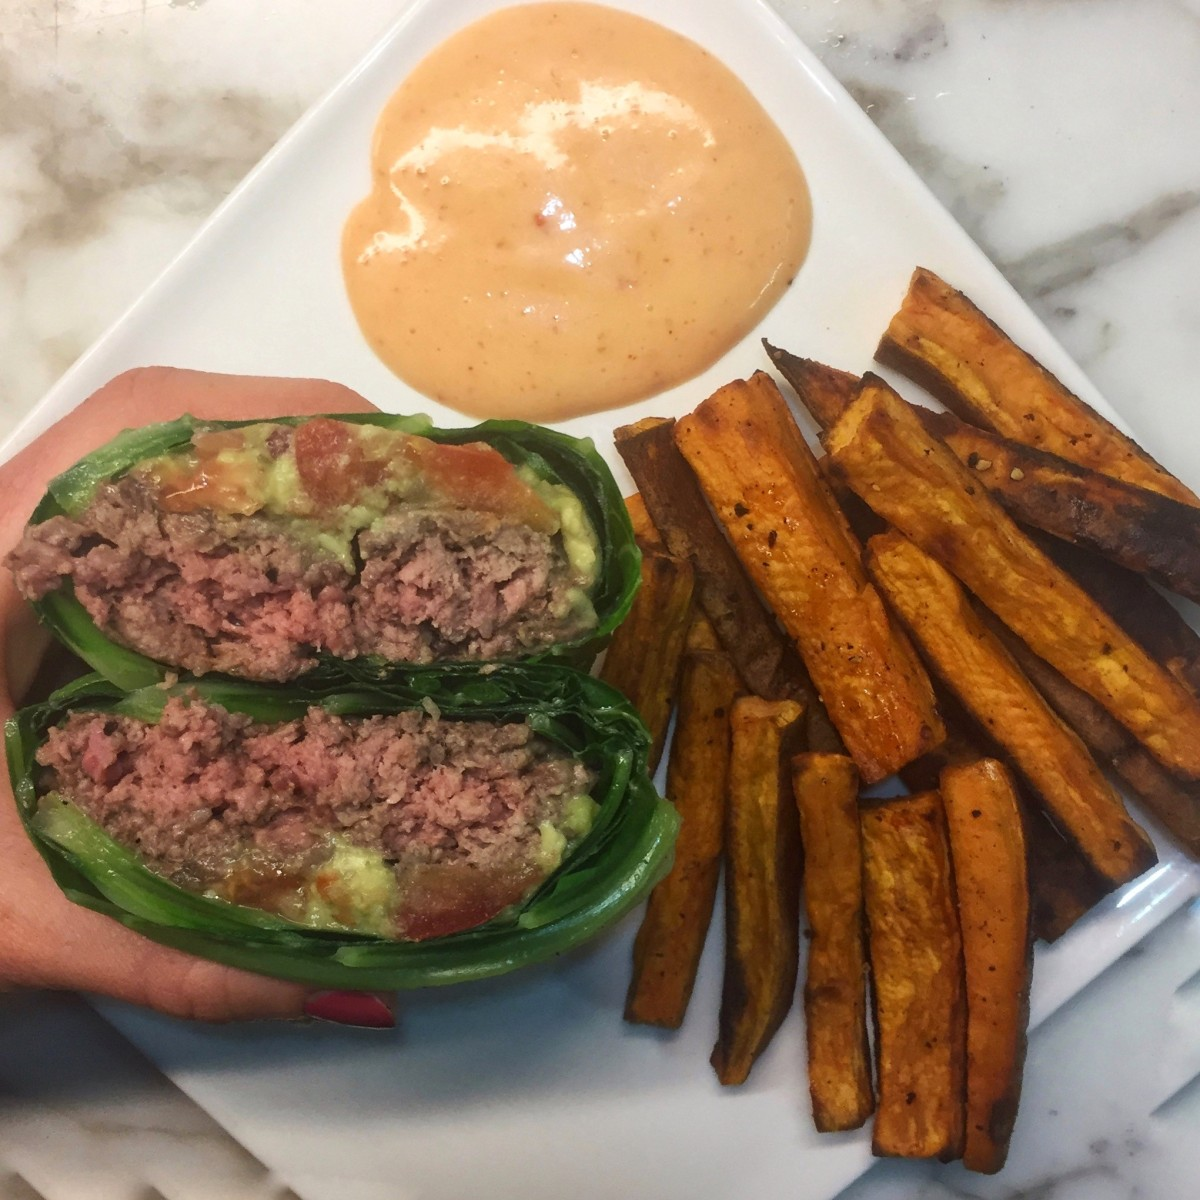 Bunless Burger with Sweet Potato Fries & Spicy MayoSauce